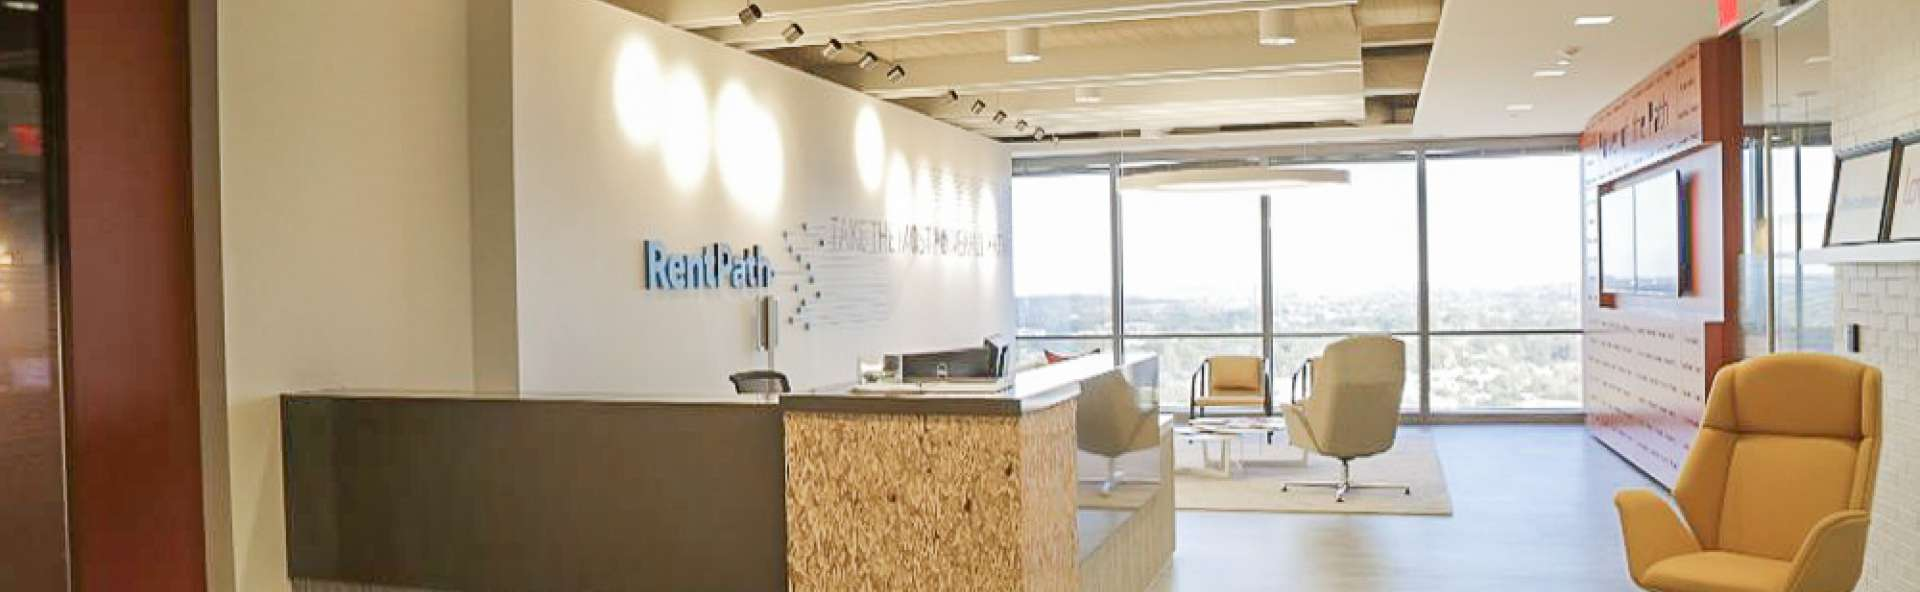 RentPath's front office at their headquarters